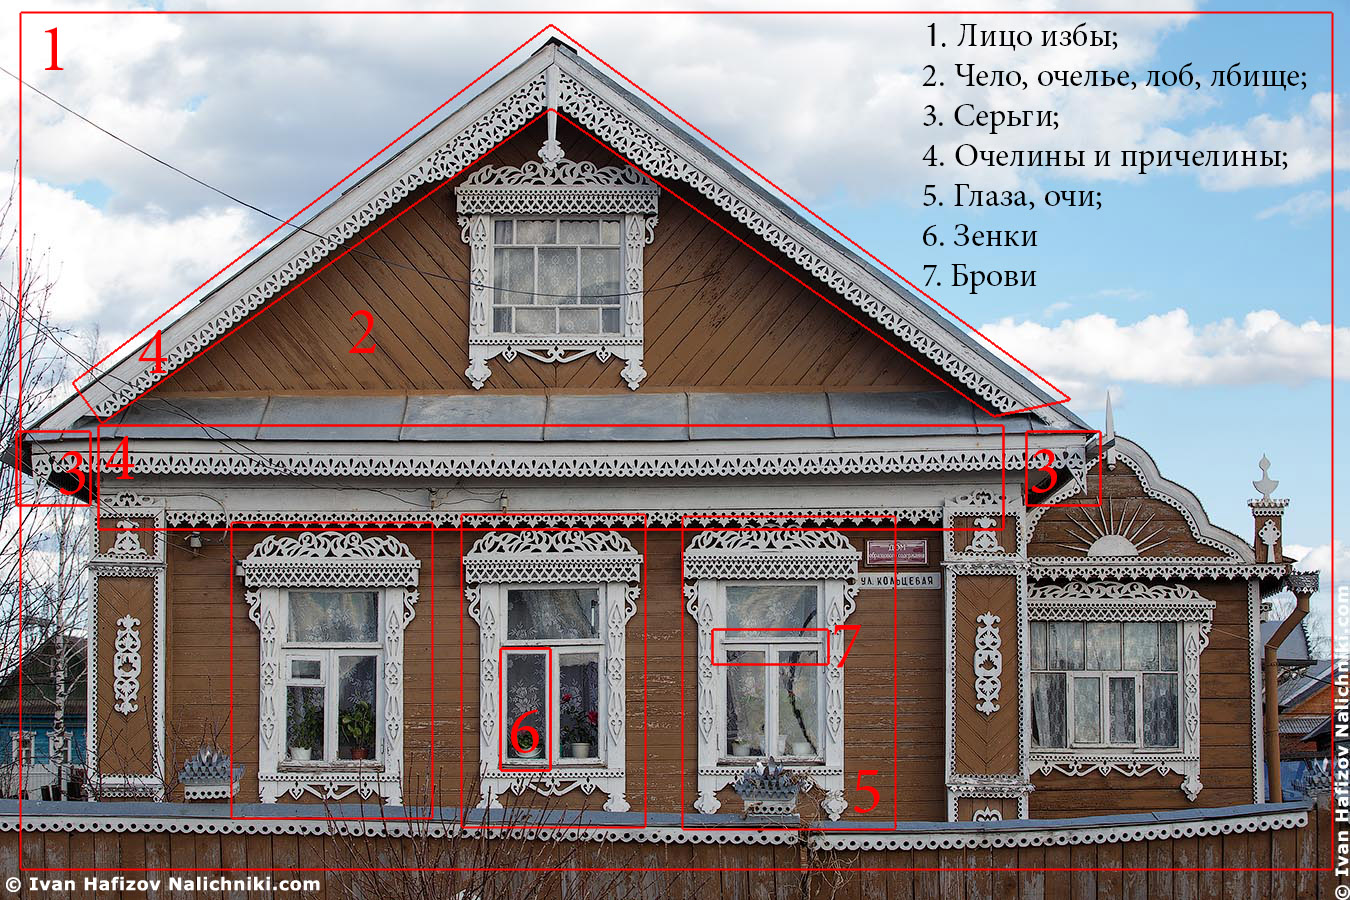 Many Parts Of The Wooden House Facade Bears Names Of Human